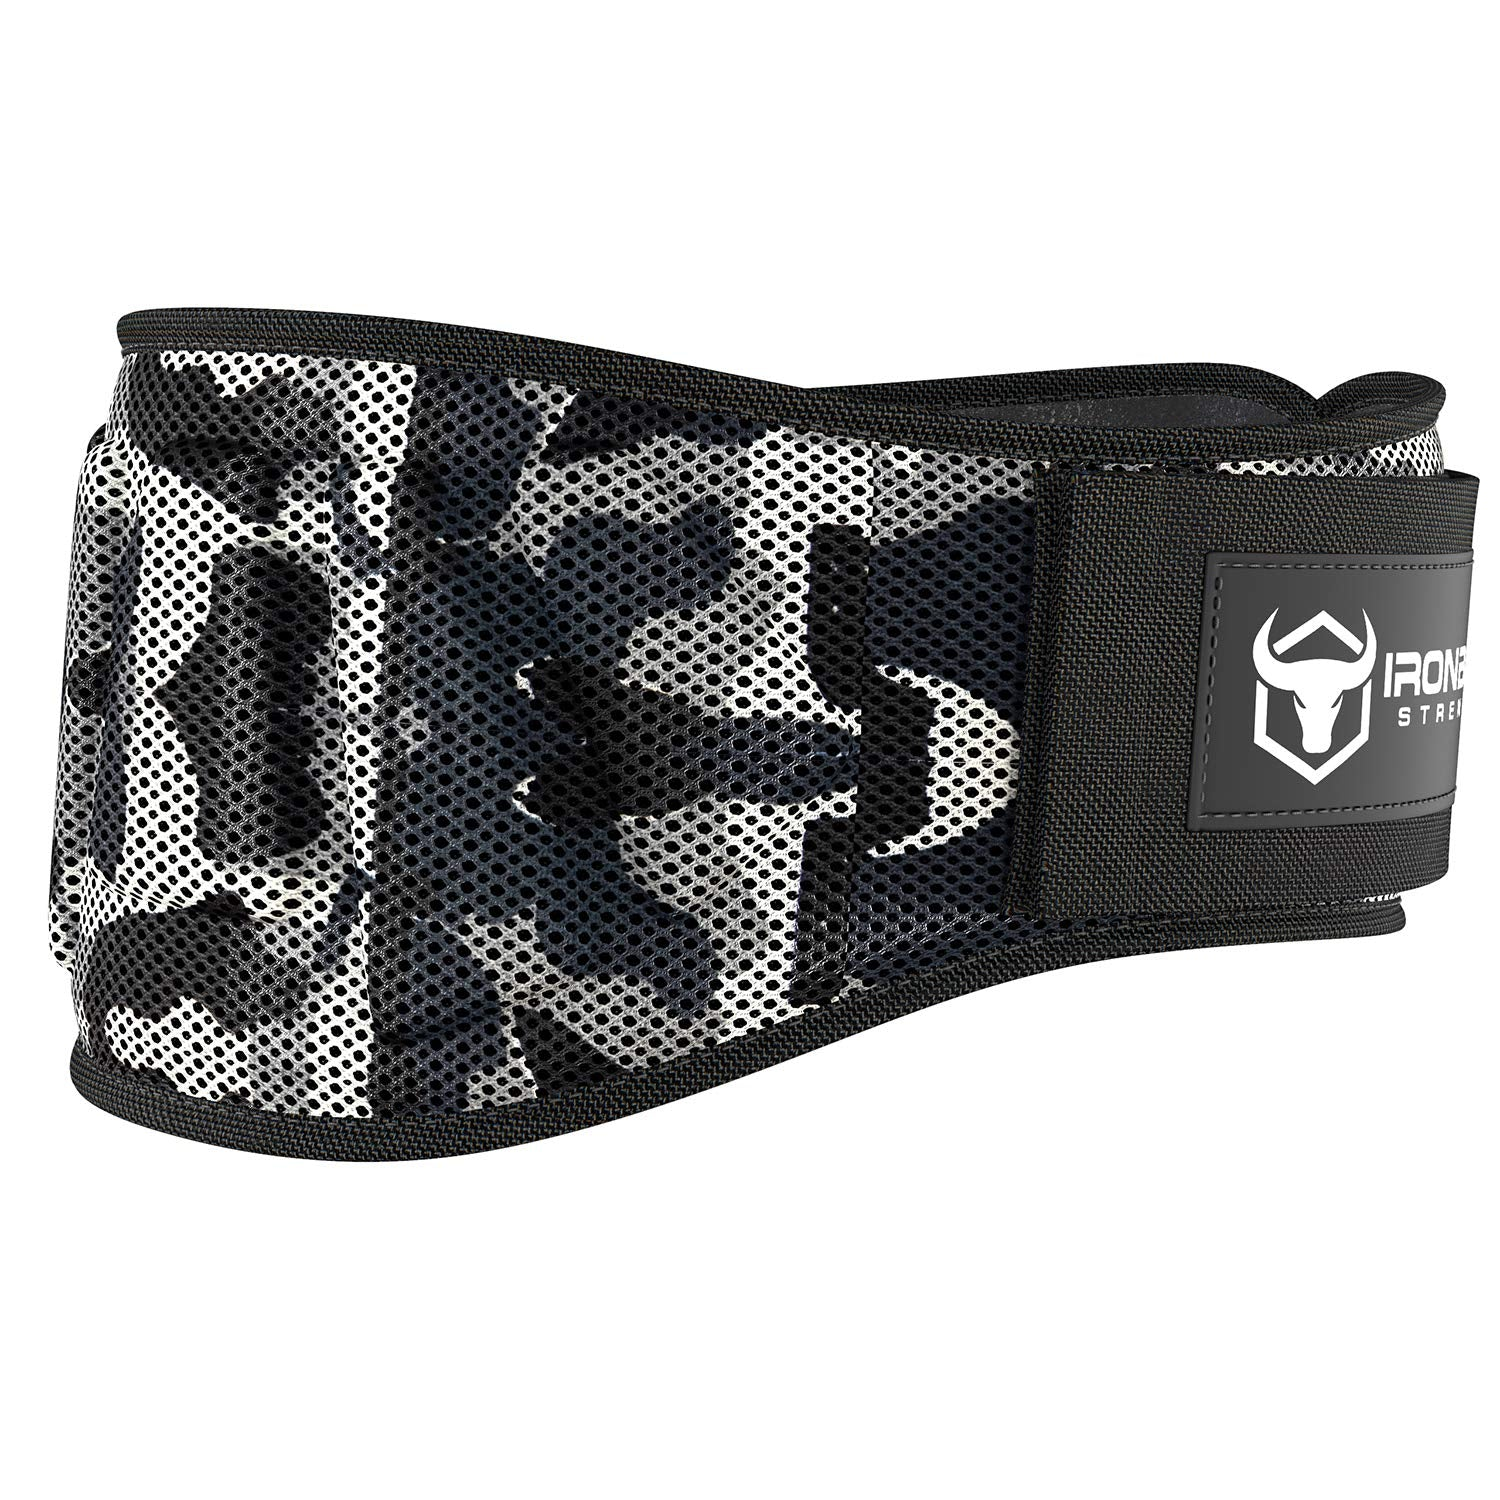 Iron Bull Strength Weightlifting Belt for Men and Women - 6 Inch Auto-Lock Weight Lifting Back Support, Workout Back Support for Lifting, Fitness, Cross Training and Powerlifitng (Large, Camo White)